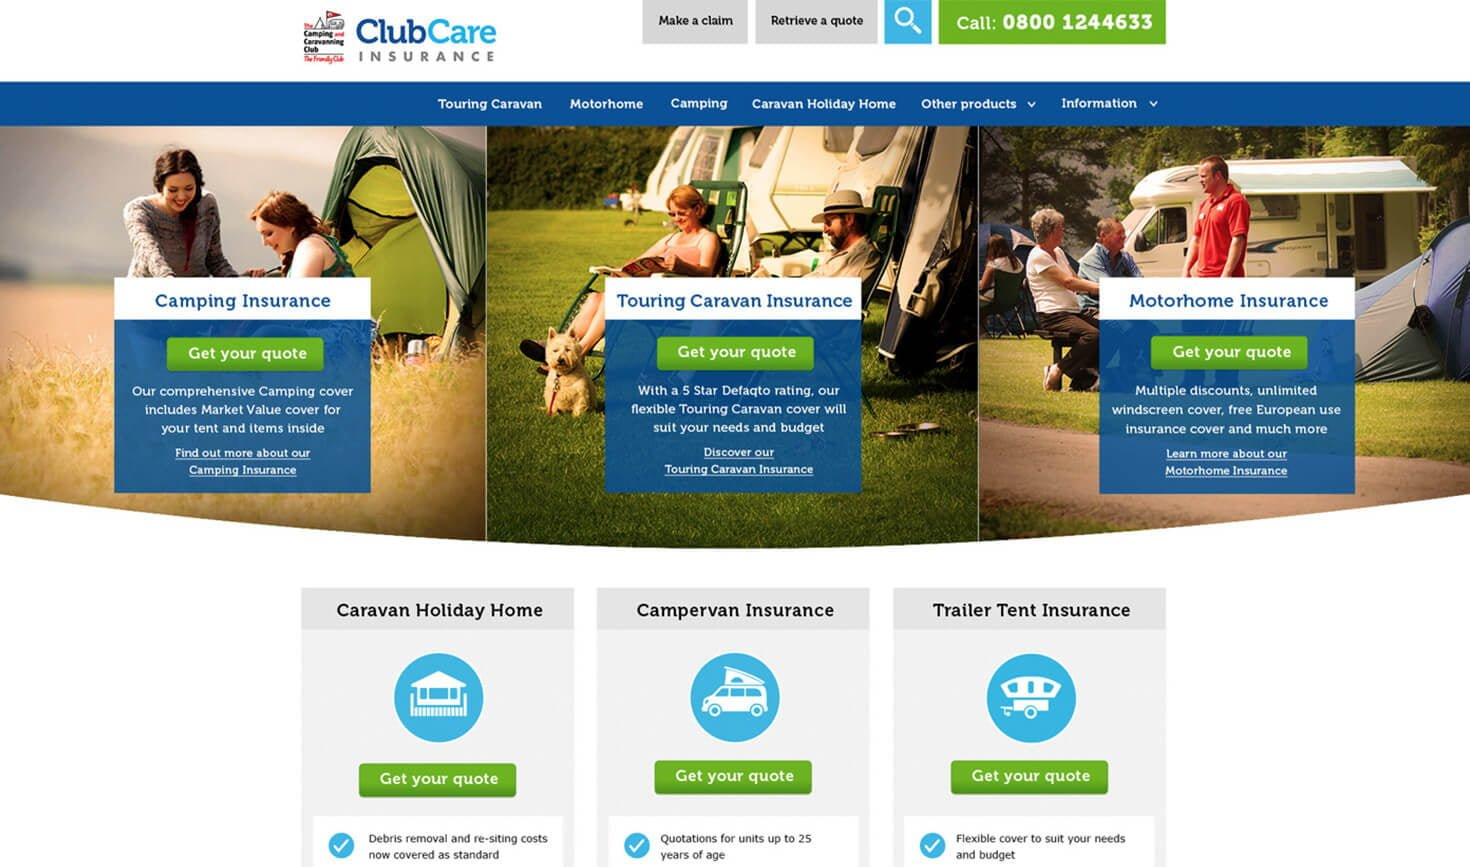 case study images_clubcare1